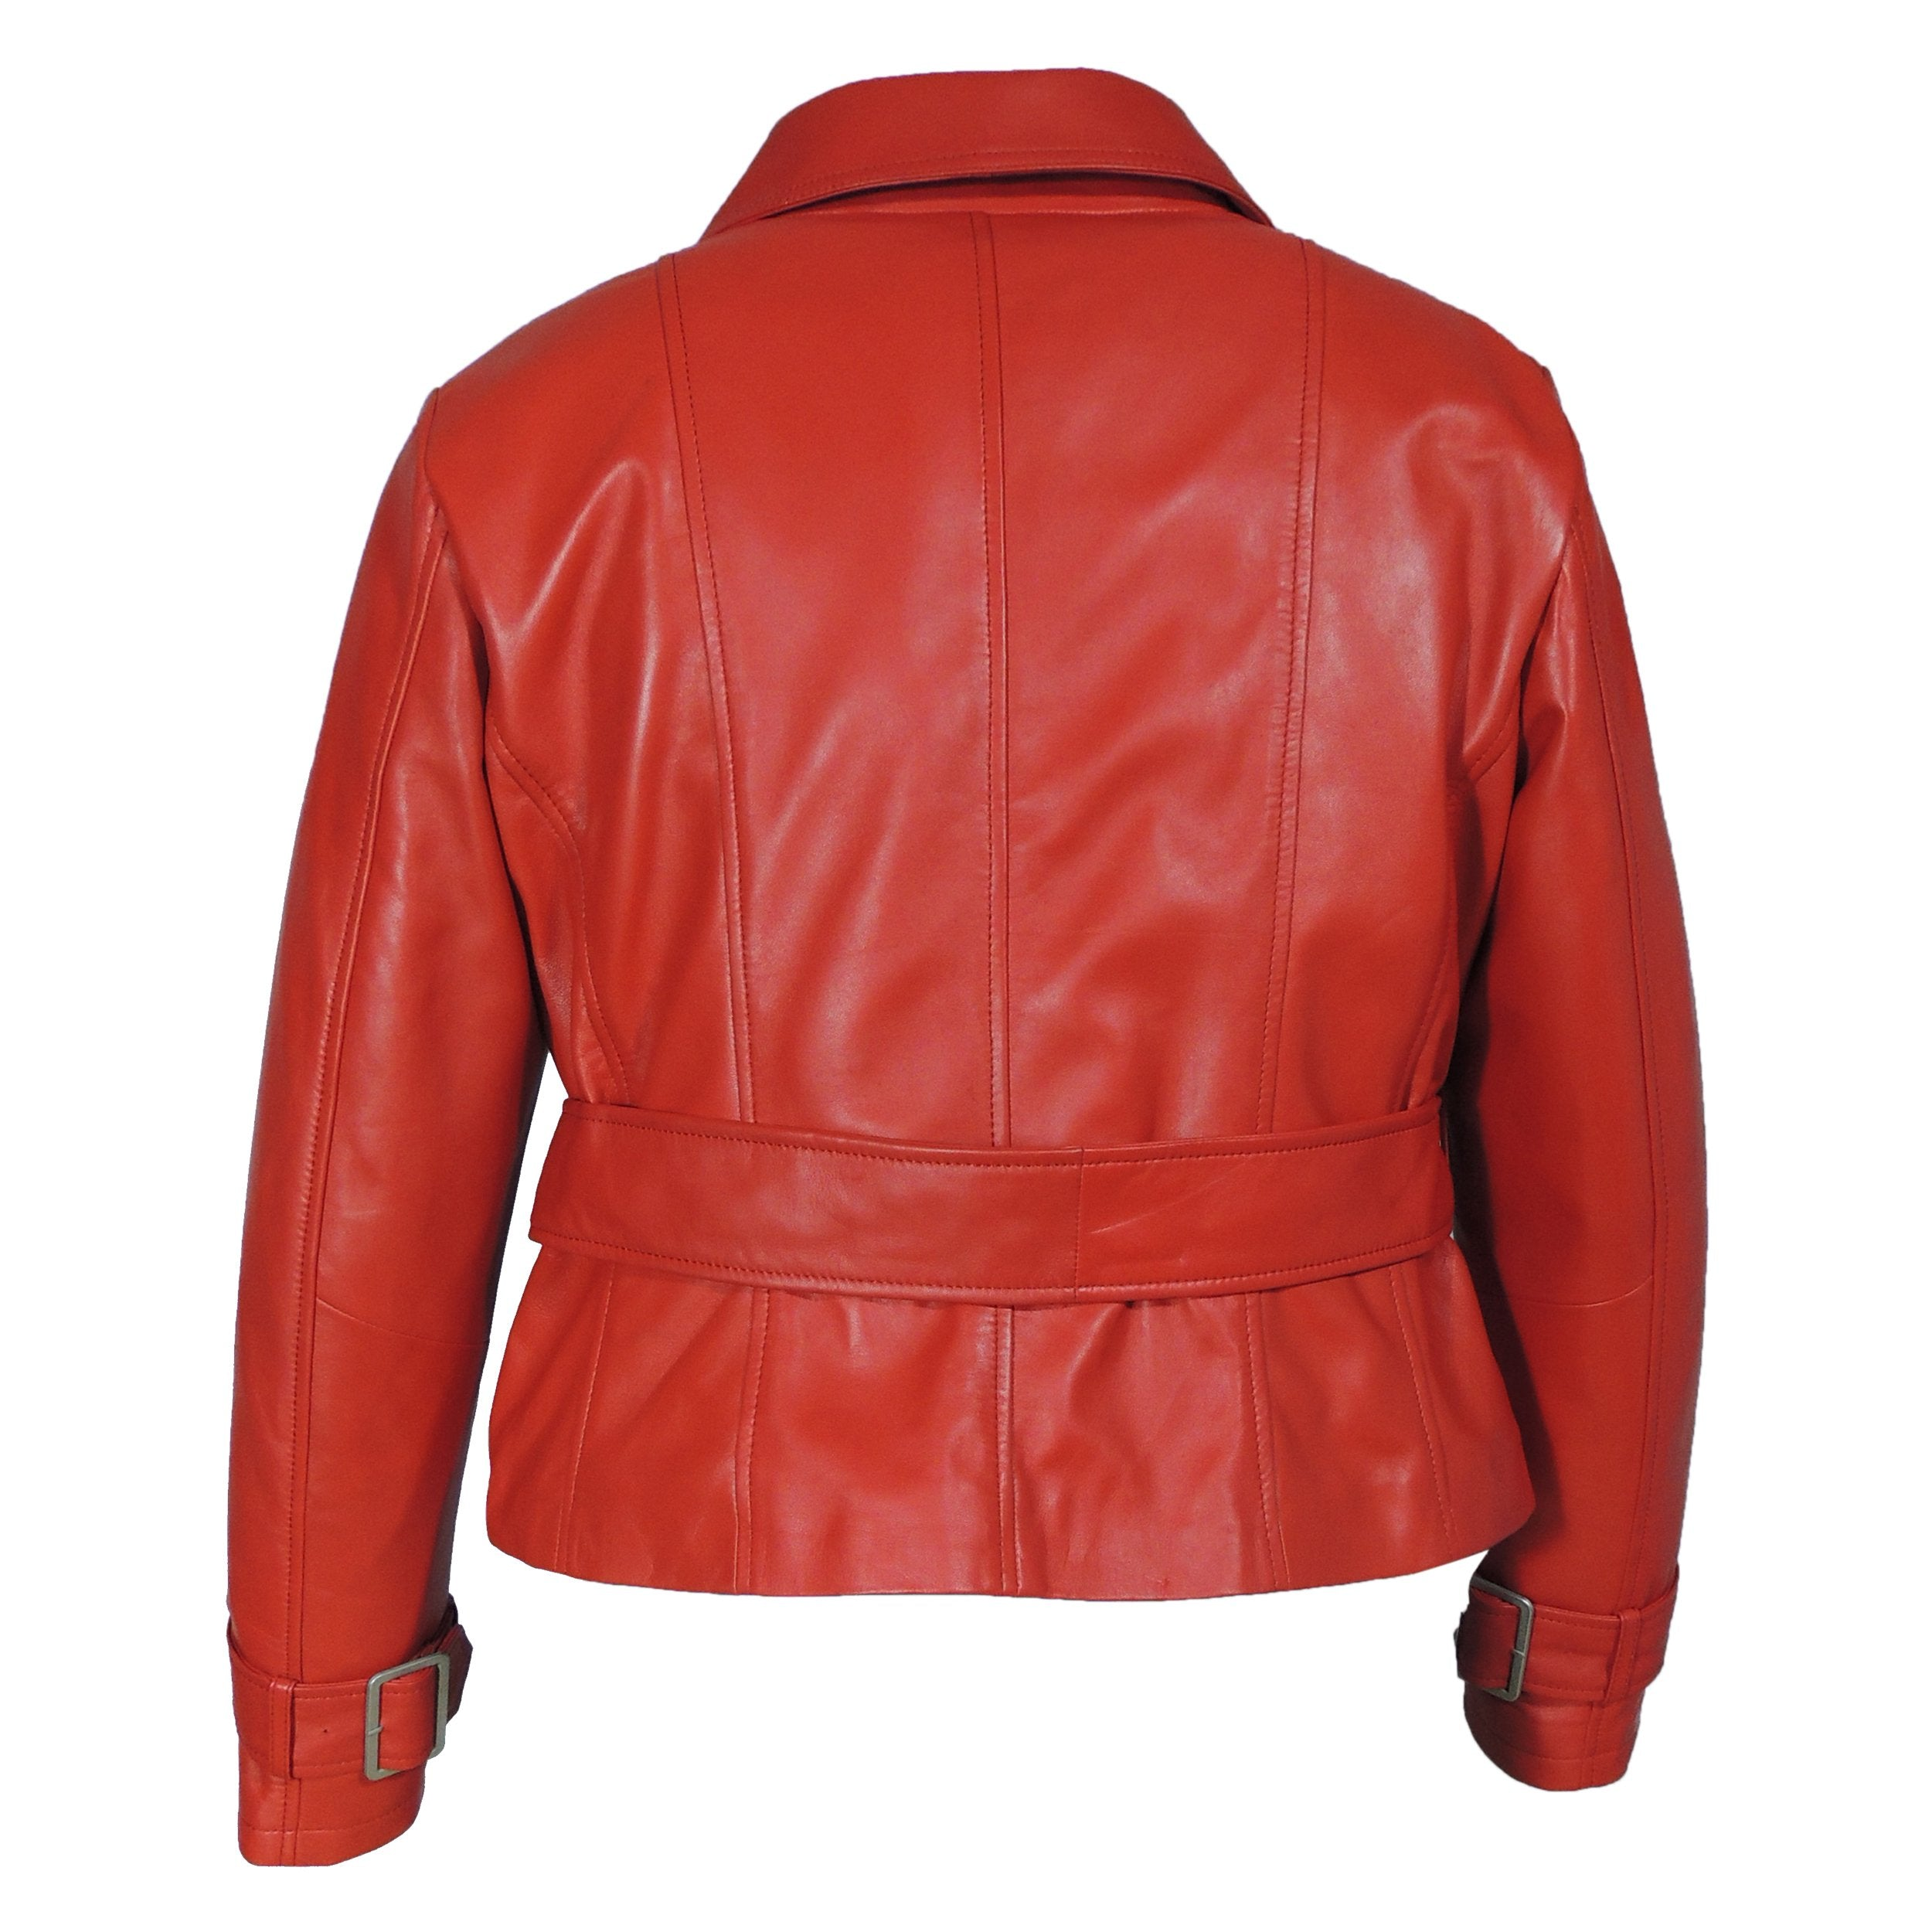 Womens Leather Blazer - Womens Red Leather Blazer - Very Exotic